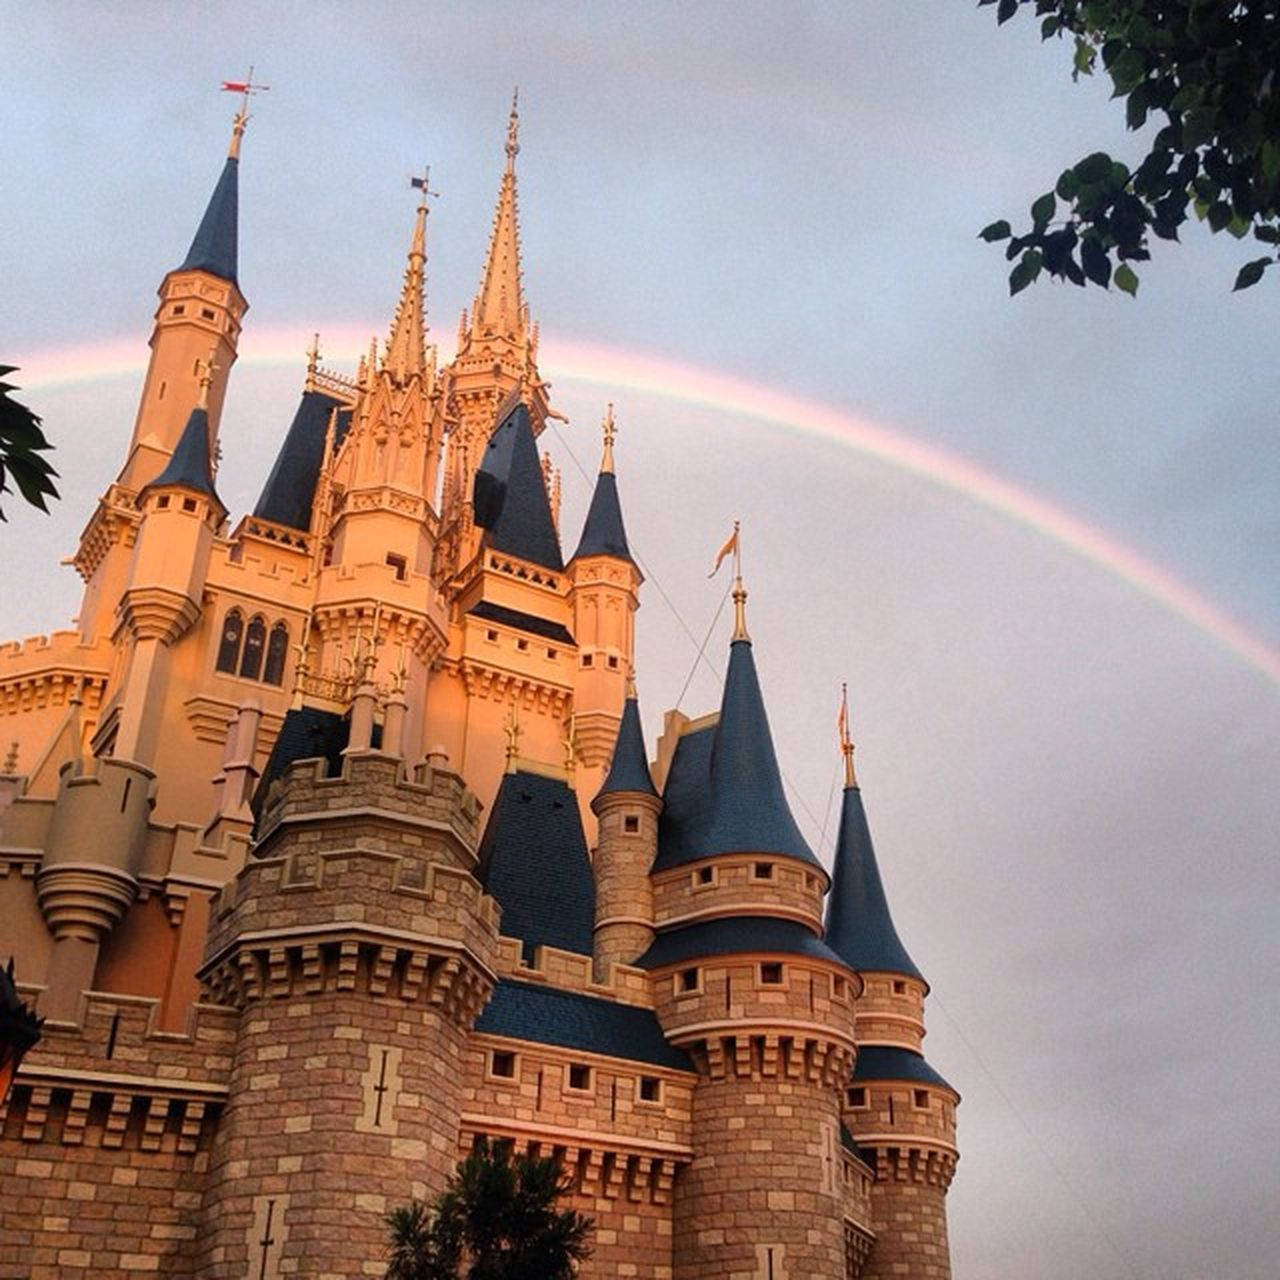 Somewhere, over the rainbow, way up high. There's a land that I heard of once in lullaby. ☺️ Nunnawanderlust Rainbow Castle Fairytale  Onceuponatime Dreamcomestrue 2daysleft ..